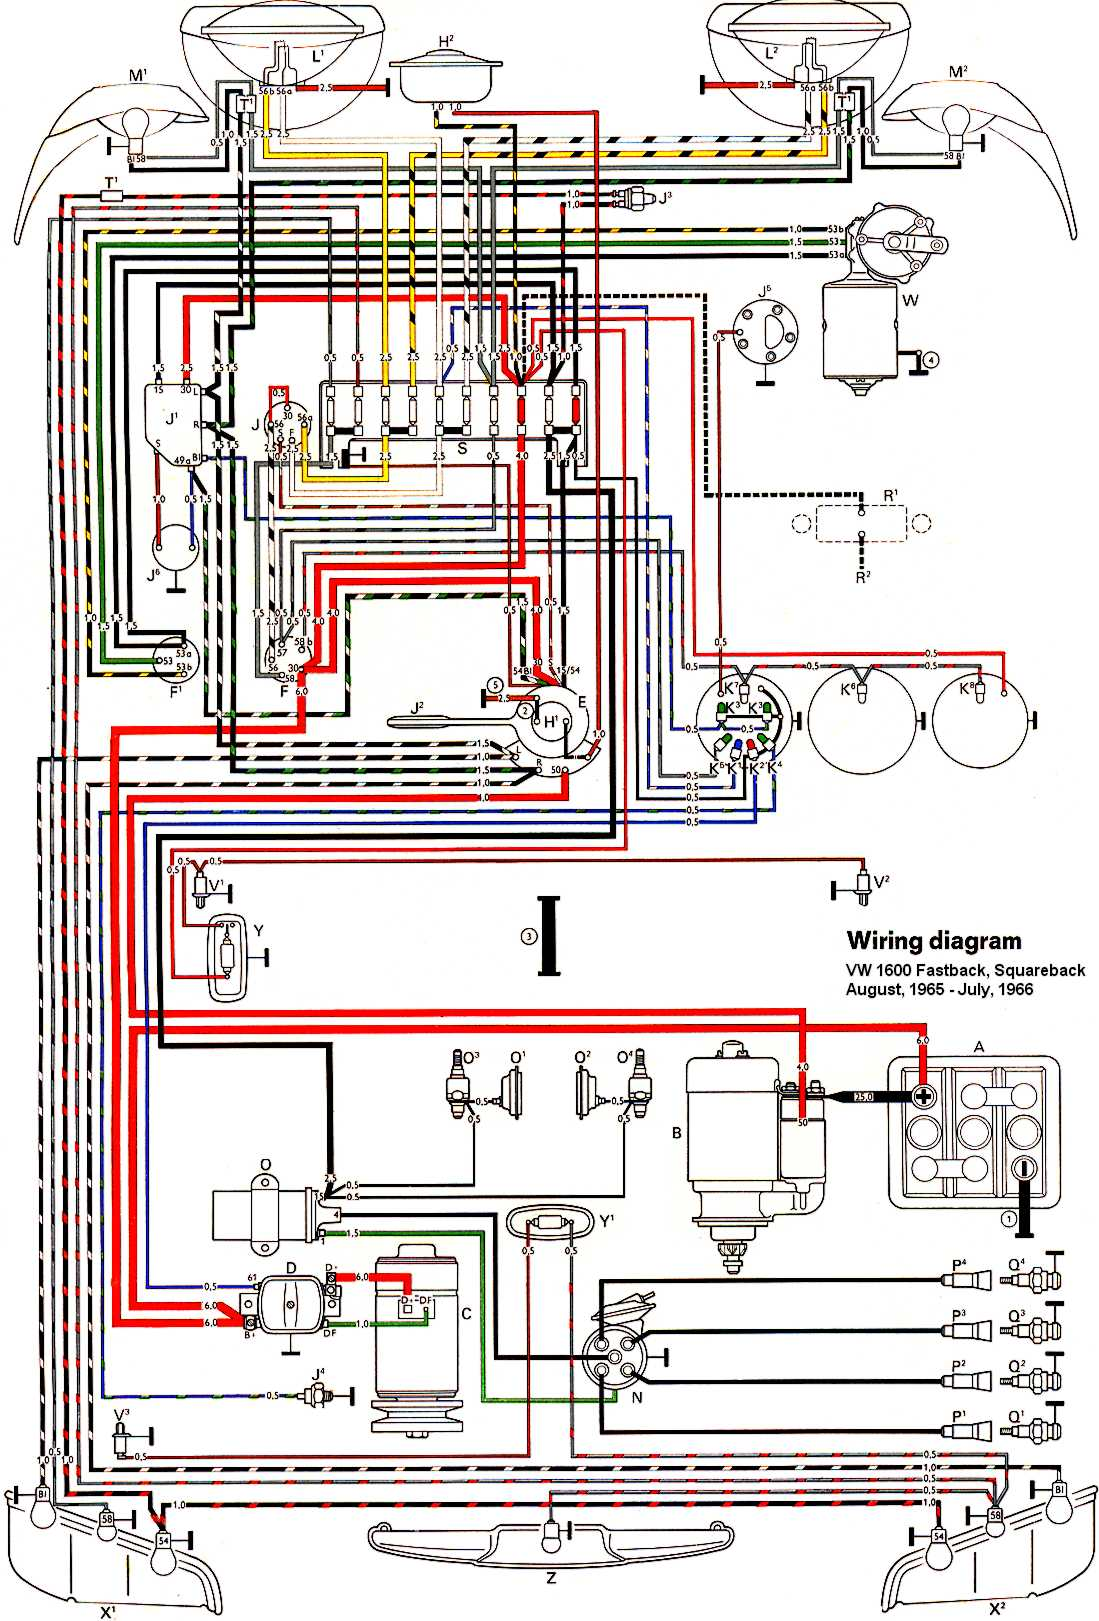 type3_1600_66 thesamba com type 3 wiring diagrams find wiring diagram for 87 ford f 150 at metegol.co